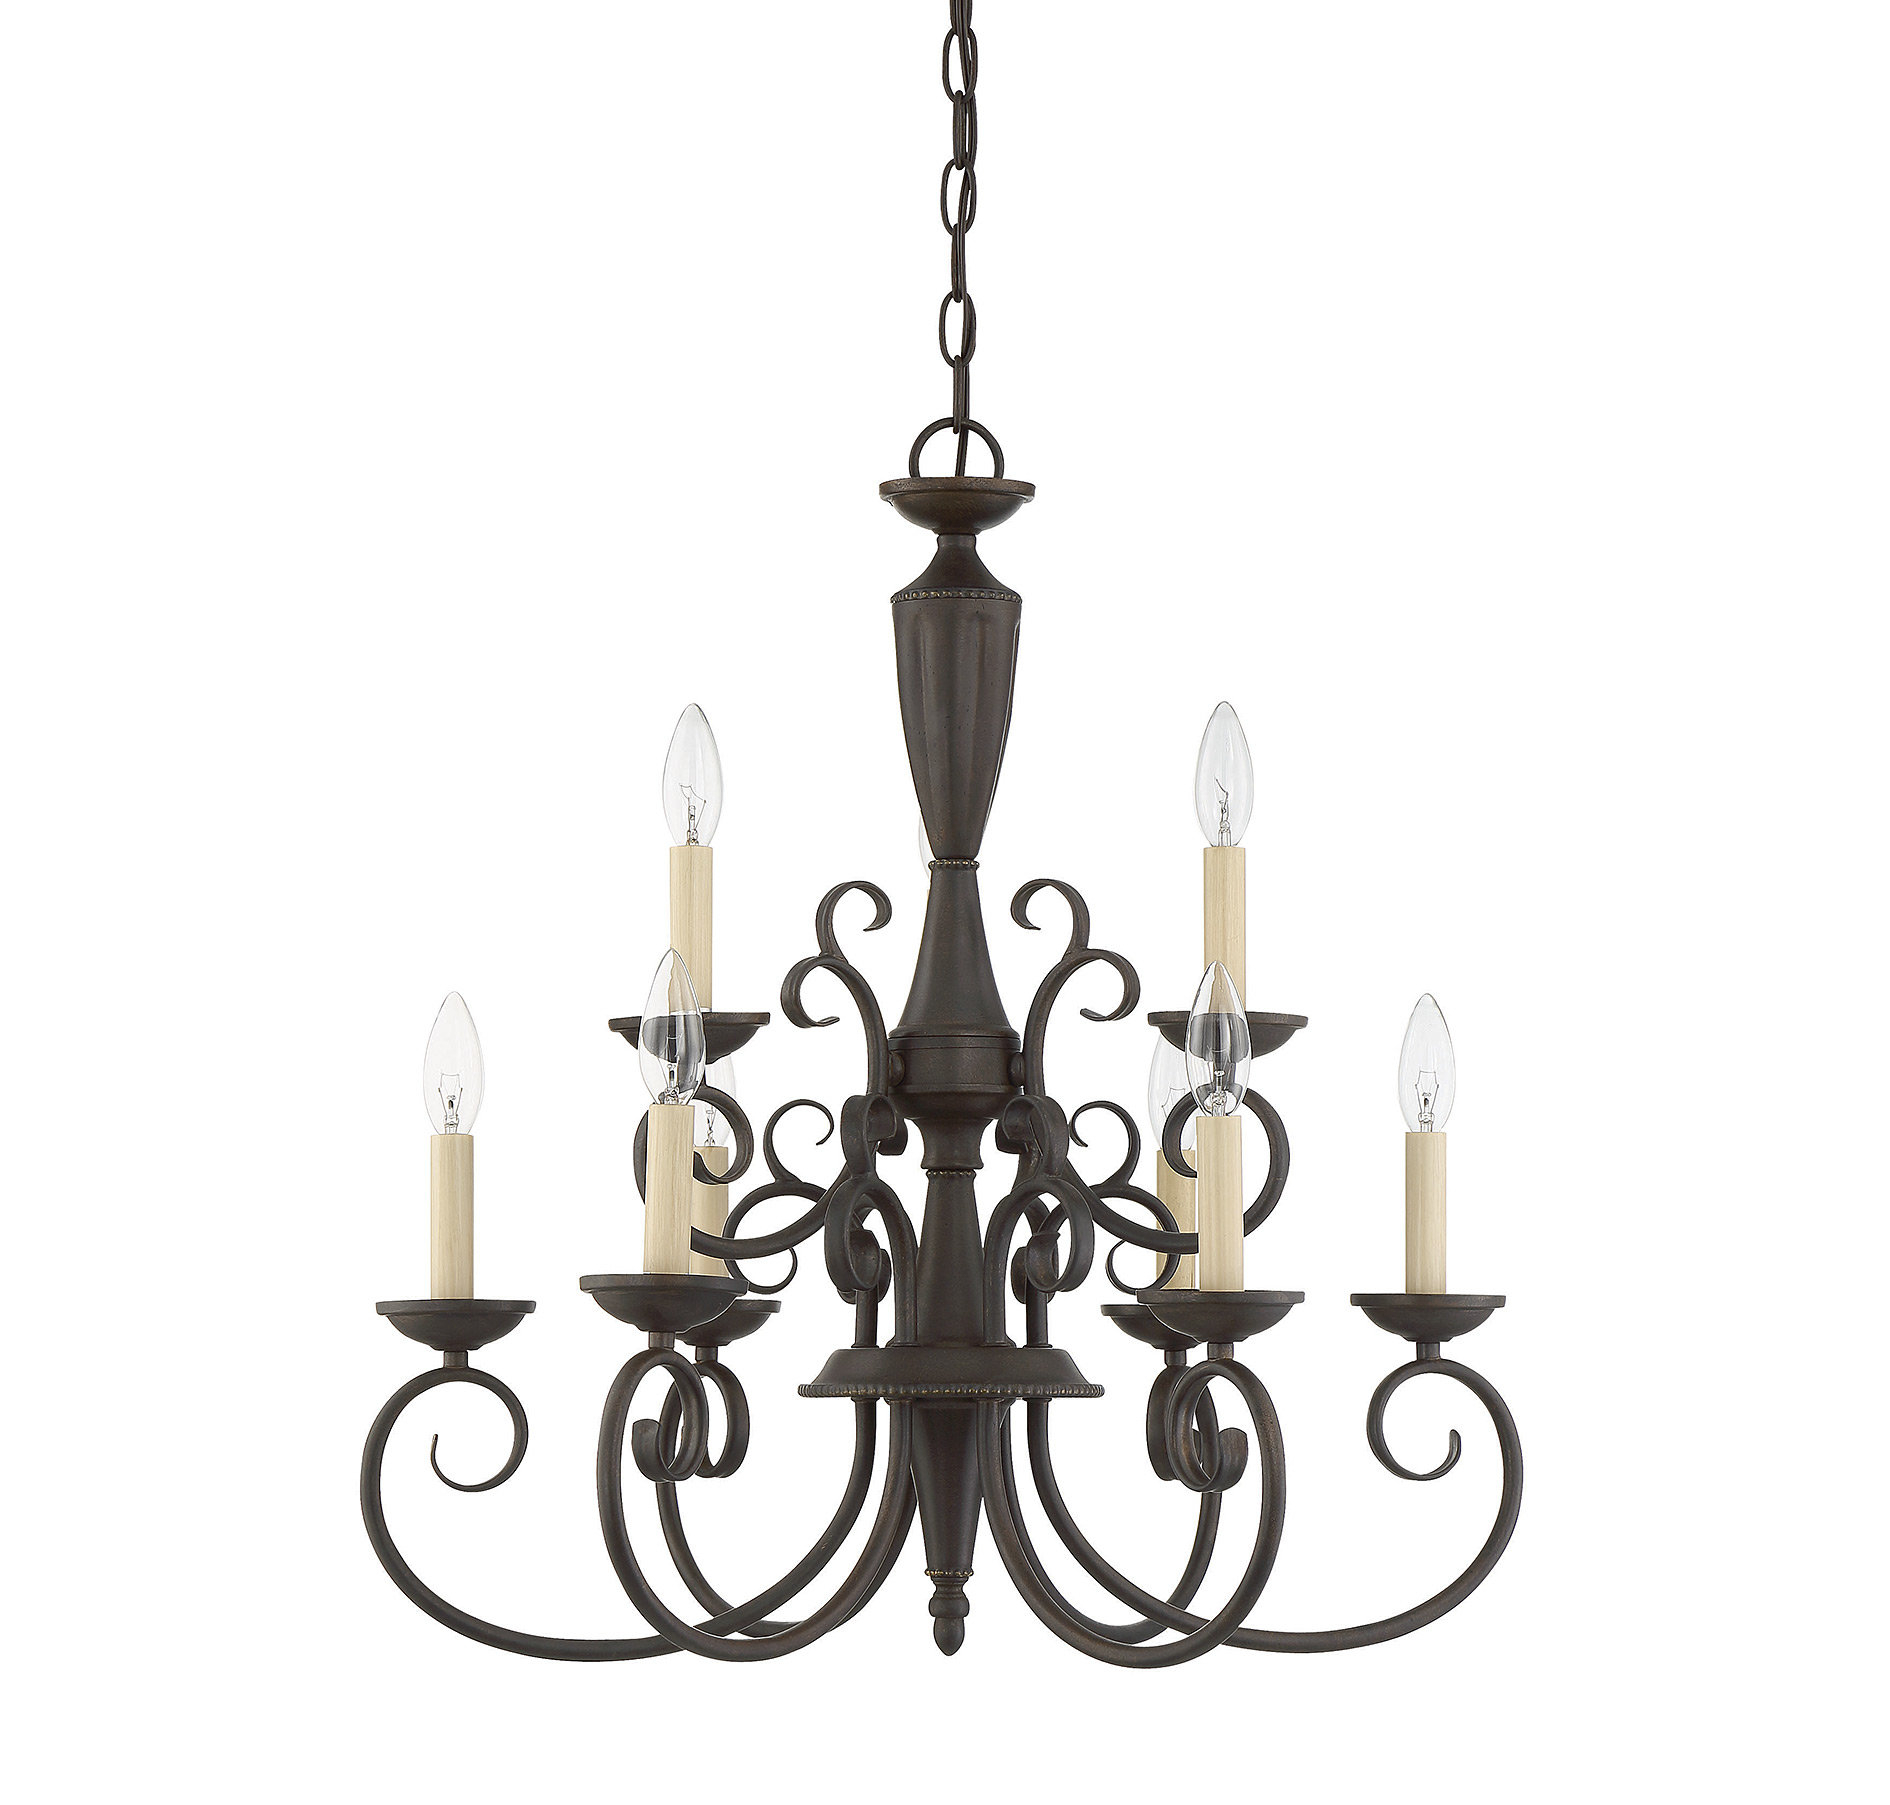 Giverny 9 Light Chandelier | Wayfair Within Giverny 9 Light Candle Style Chandeliers (View 11 of 30)